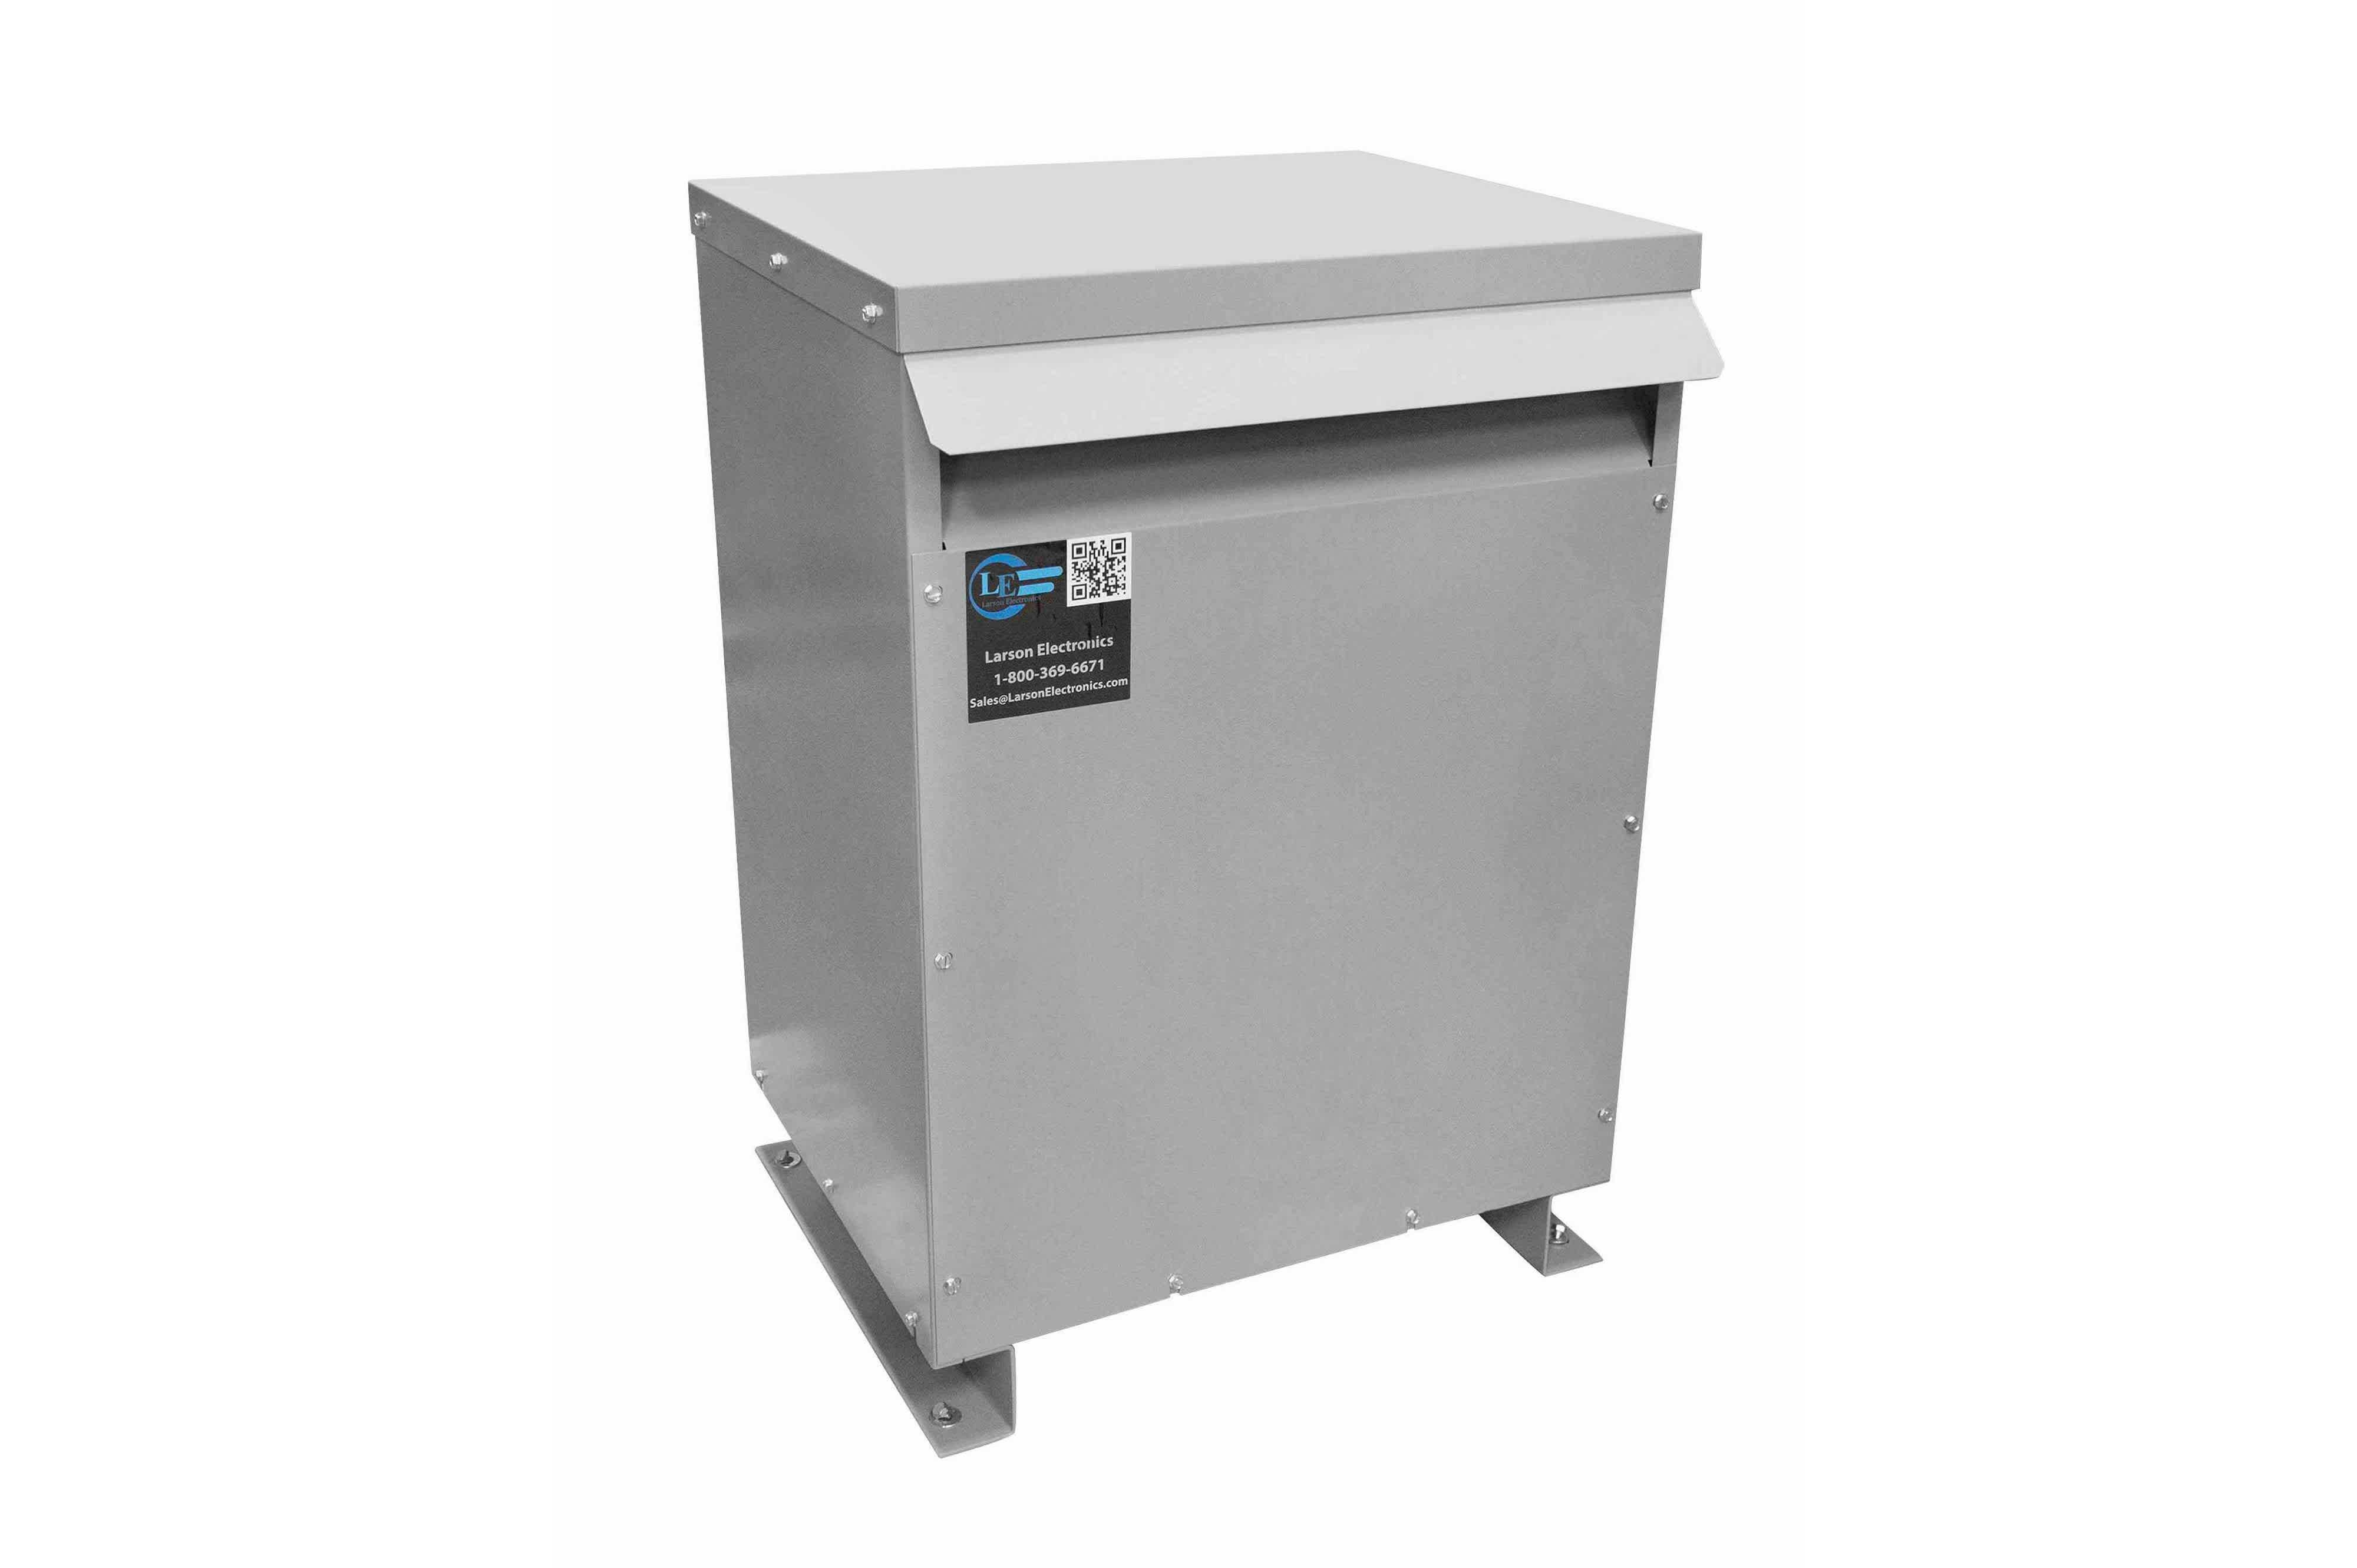 22.5 kVA 3PH Isolation Transformer, 480V Delta Primary, 415V Delta Secondary, N3R, Ventilated, 60 Hz